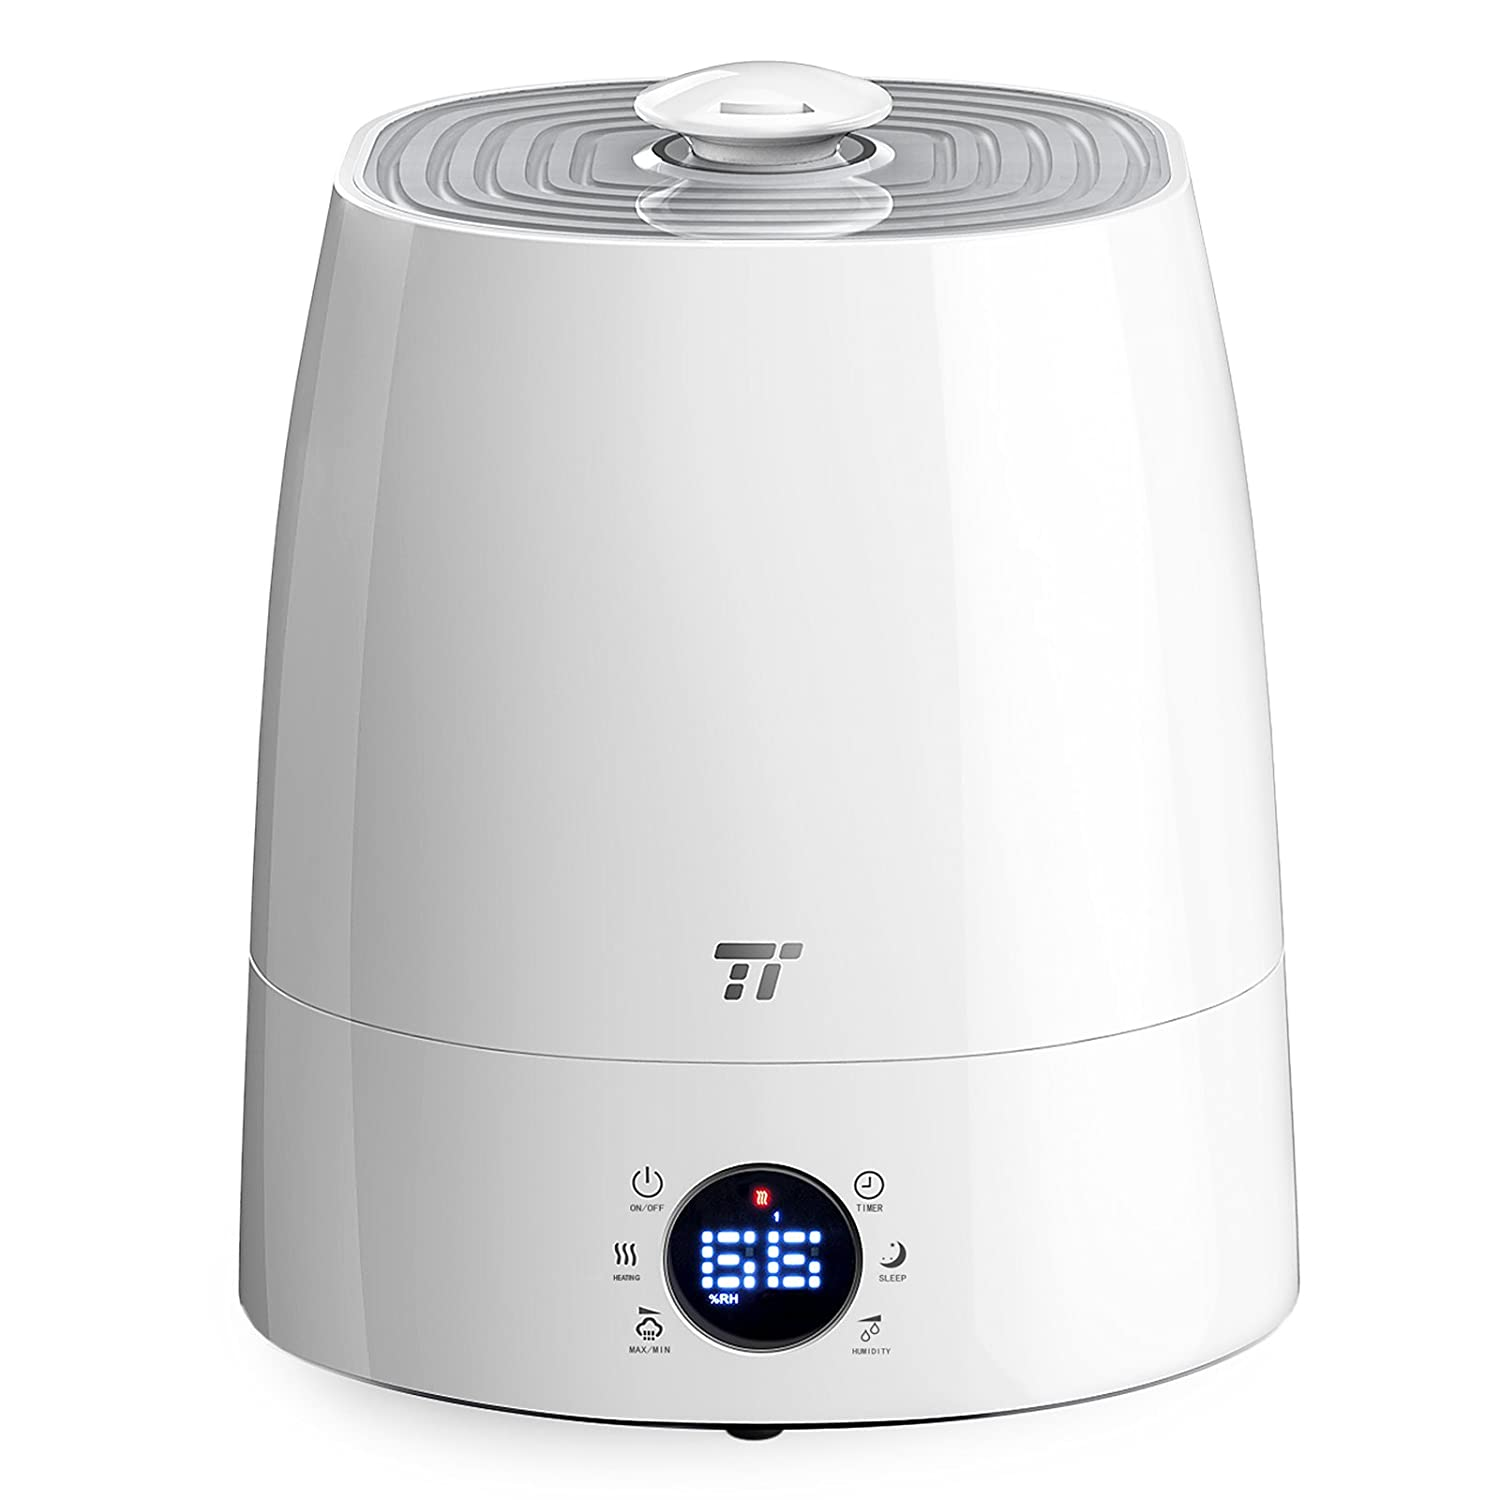 TT-AH007 humidifier Review